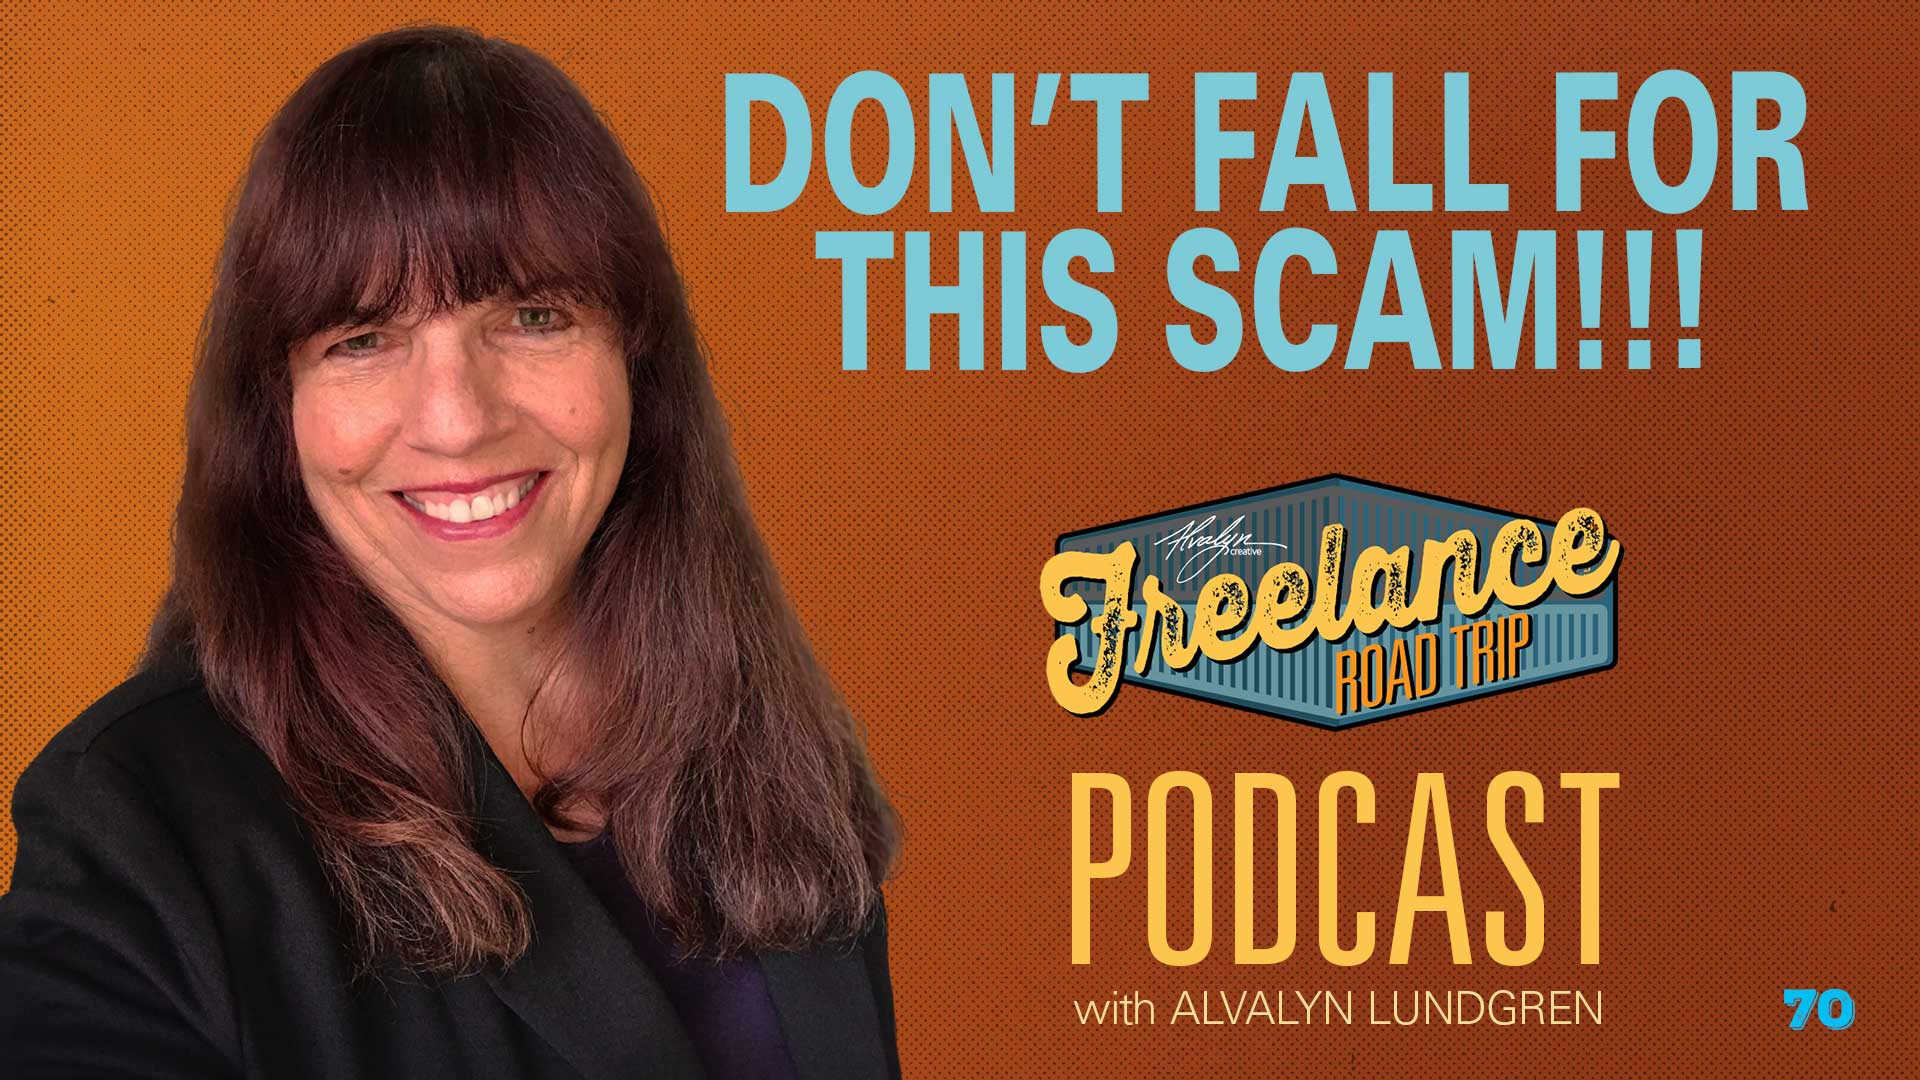 Freelance Road Trip Podcast with Alvalyn Lundgren 70 Don't Fall For This Scam!